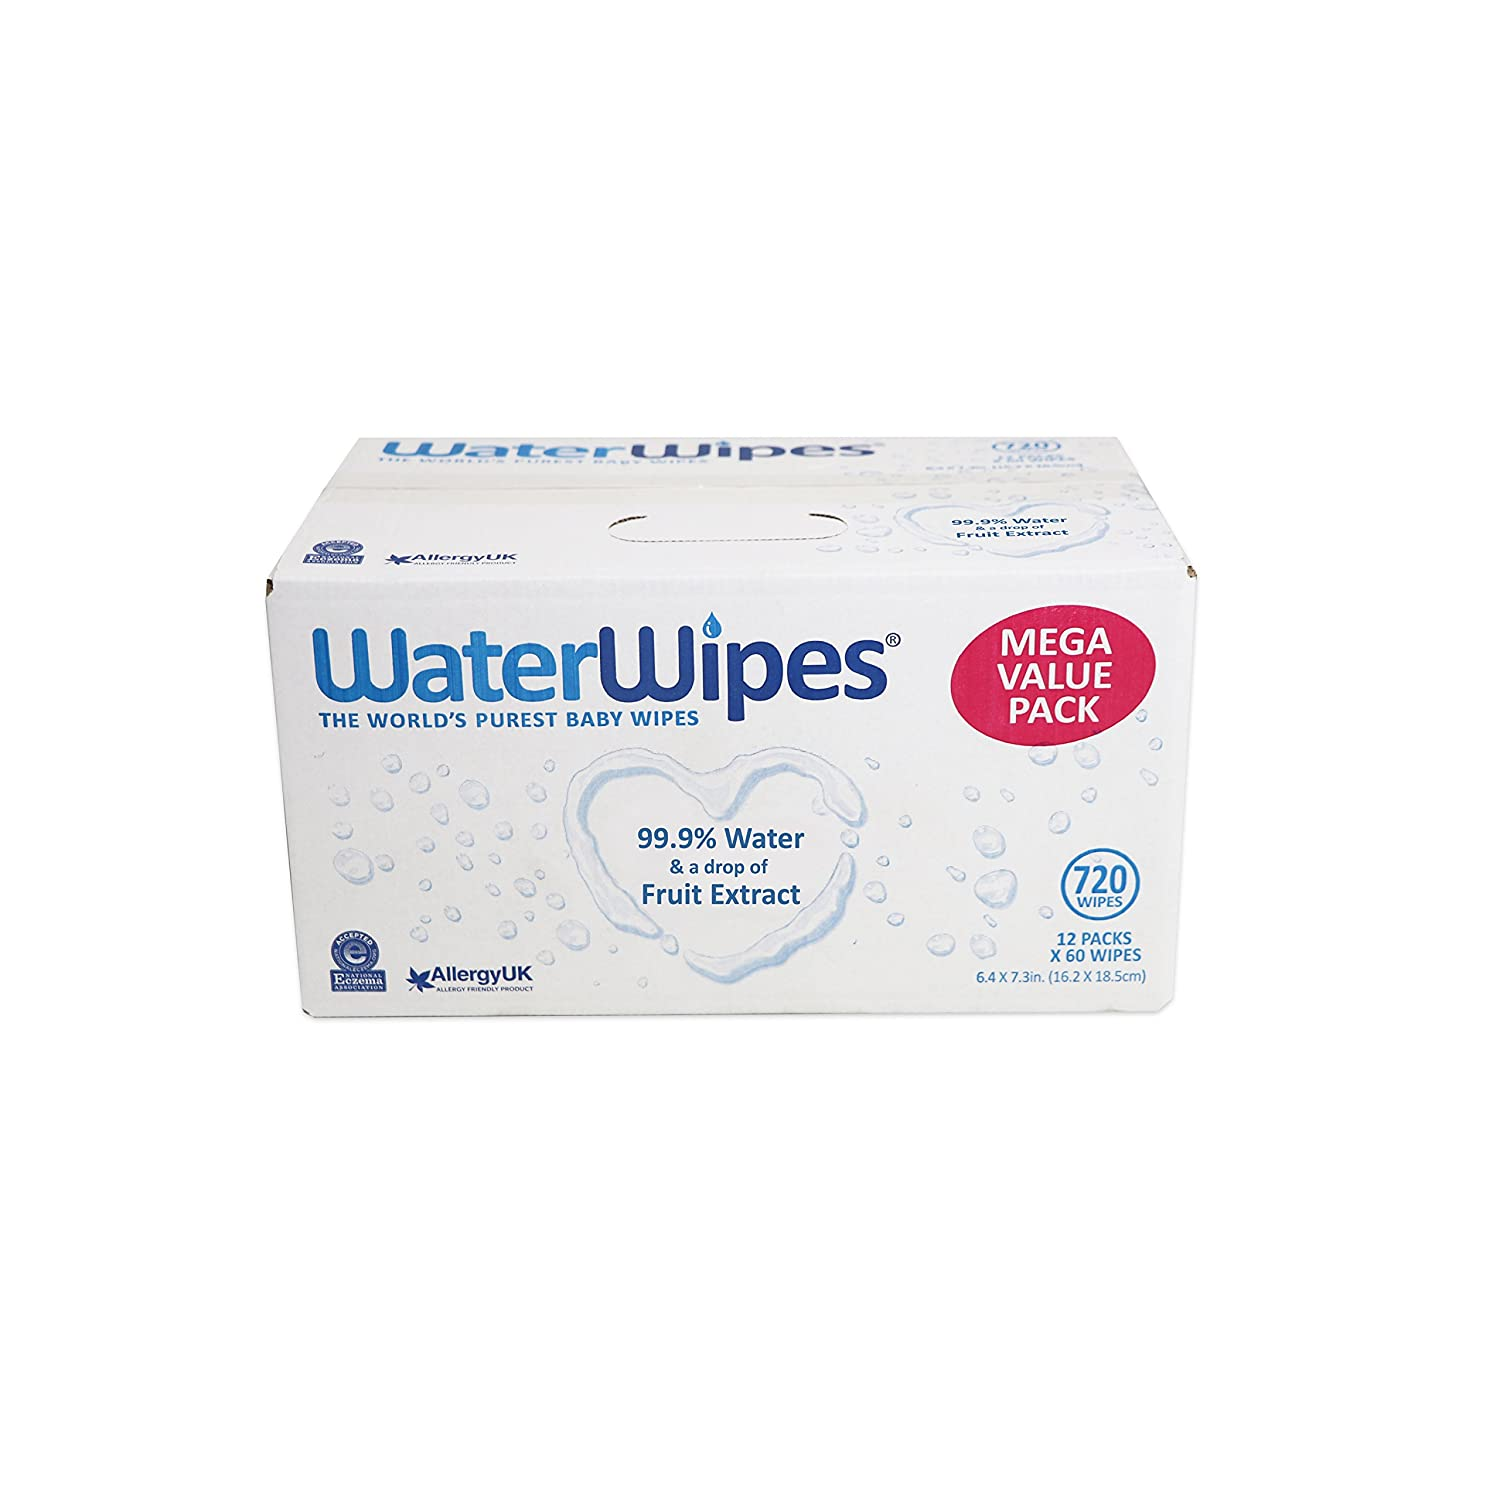 WaterWipes Baby Wipes Super Value Box, 12 x 60 Wipes (Total 720 Wipes) by WaterWipes: Amazon.es: Salud y cuidado personal